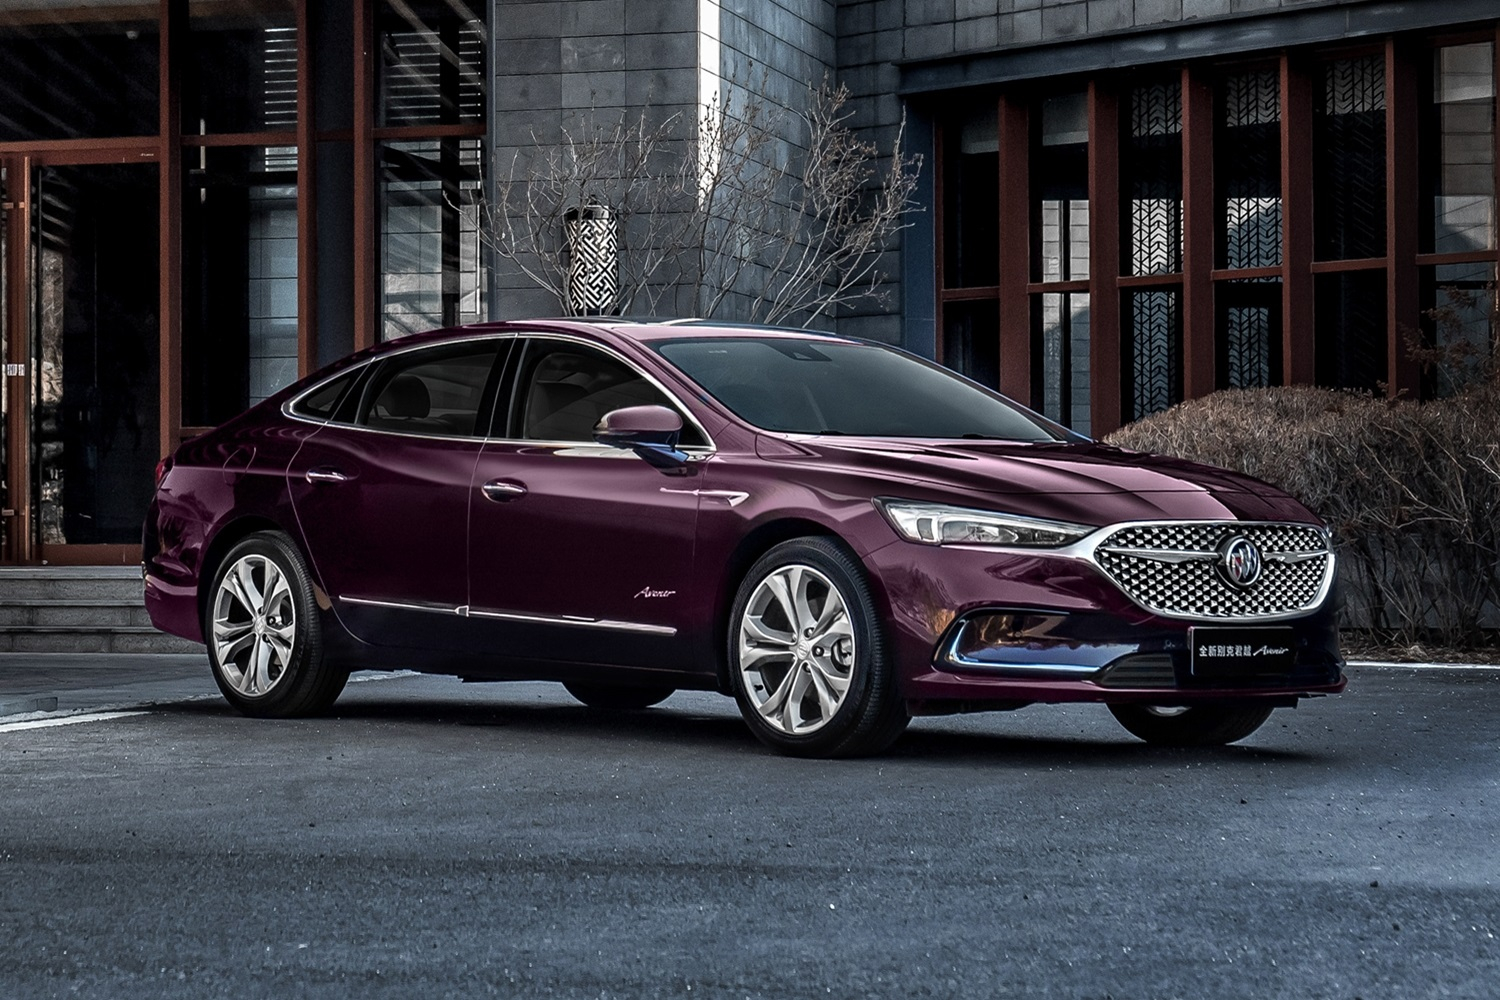 2021 Buick Lacrosse Gets More Refined Than Ever | Gm Authority New 2021 Buick Lucerne Price, Engine, Oil